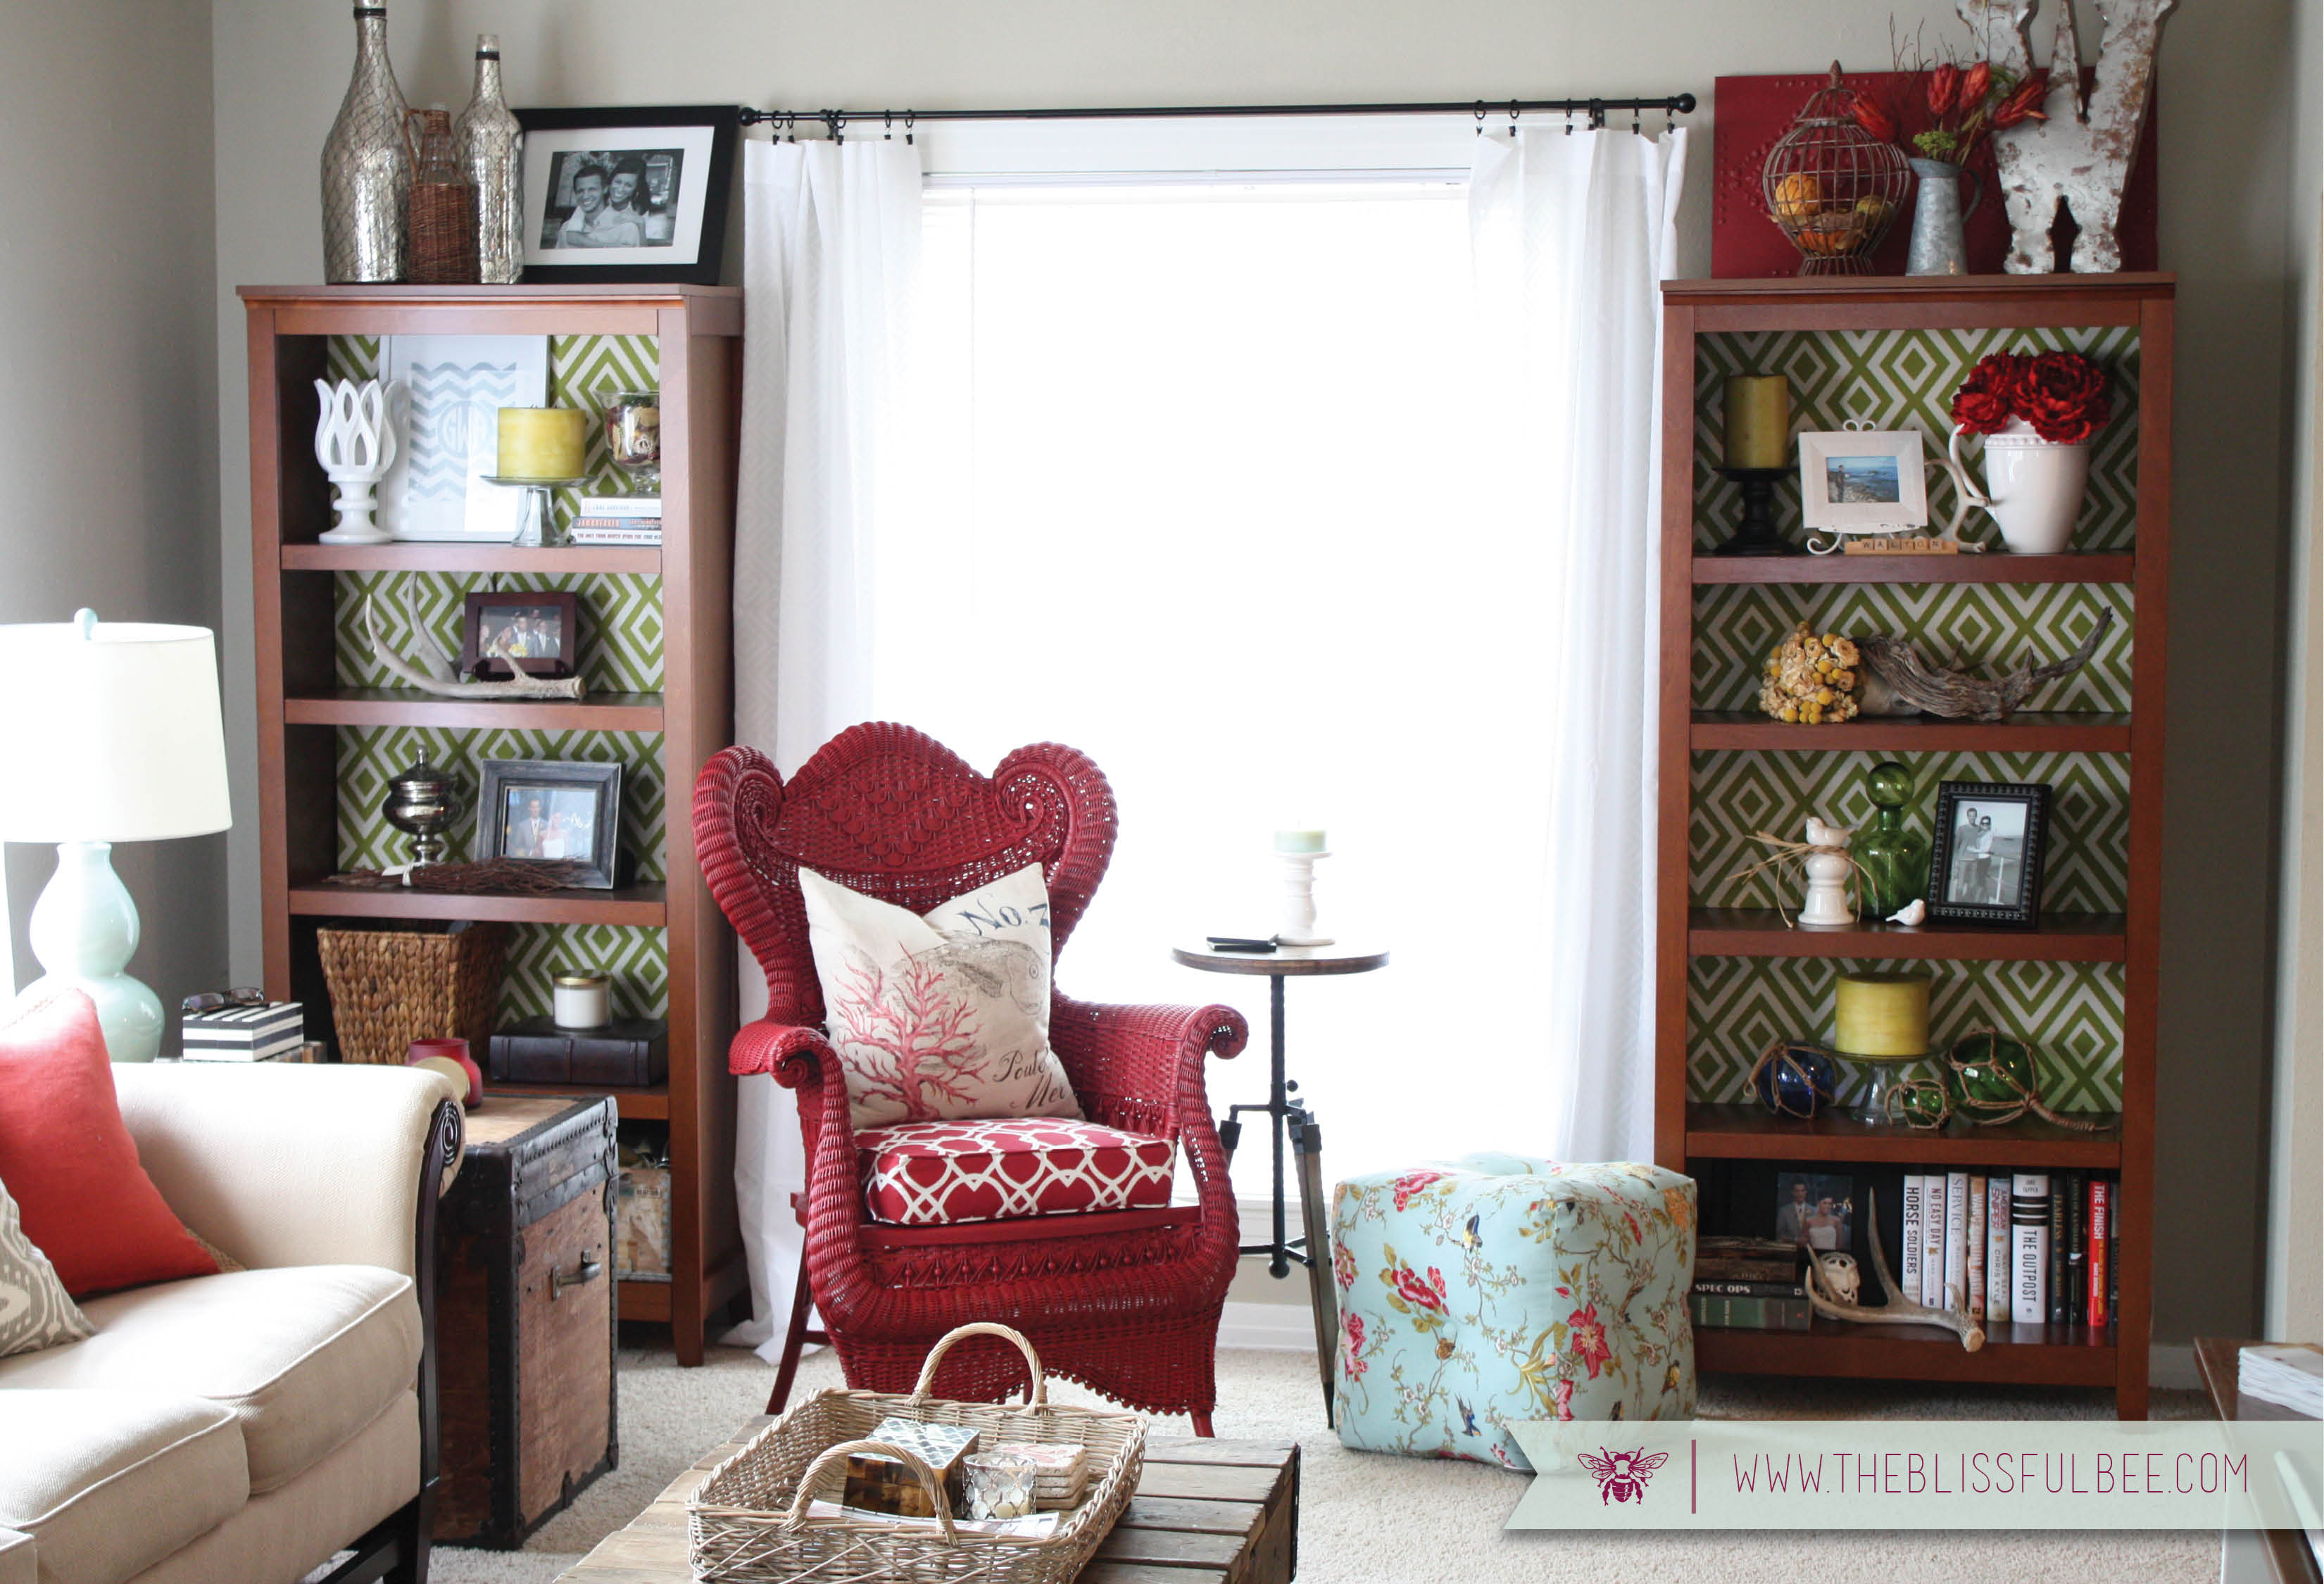 Living Room Reveal – THE BLISSFUL BEE